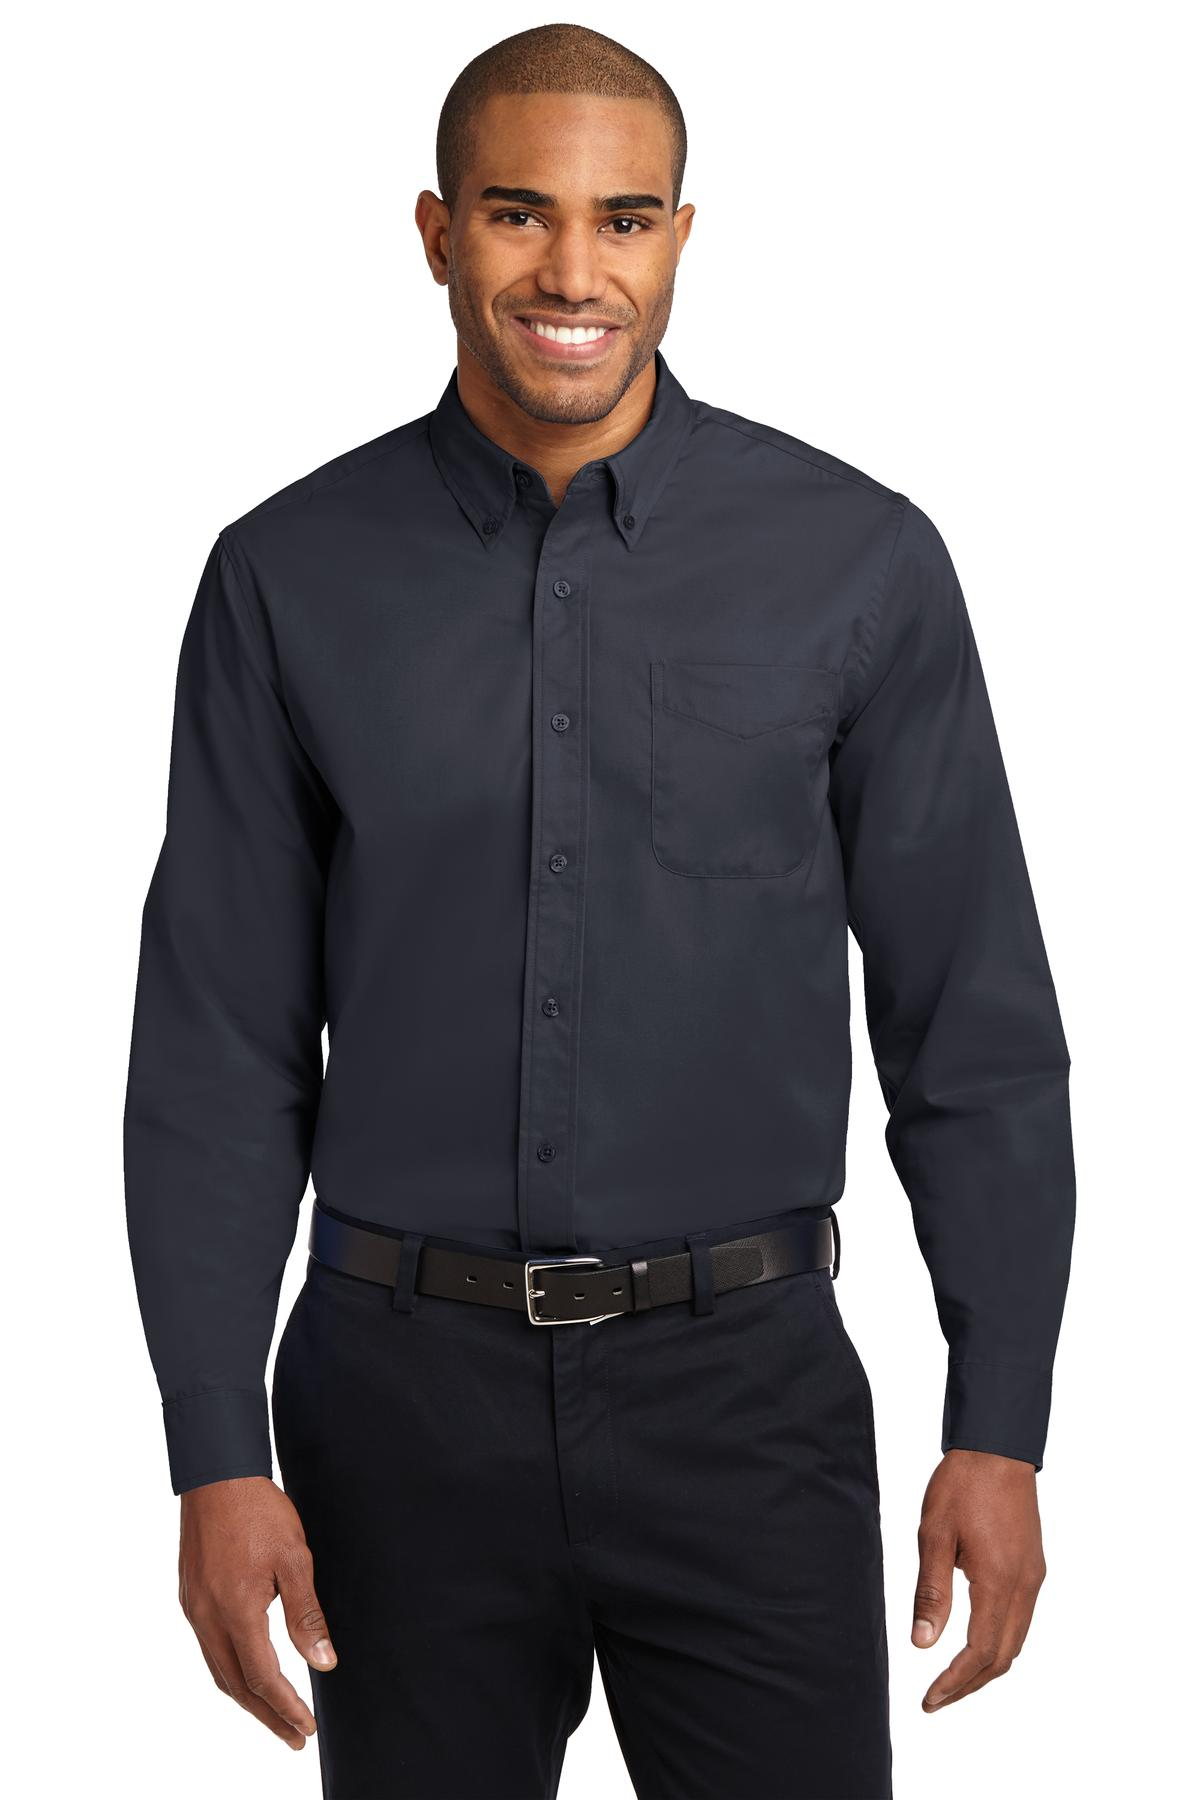 Classic Navy / Light Stone Port Authority Long Sleeve Easy Care Shirt.